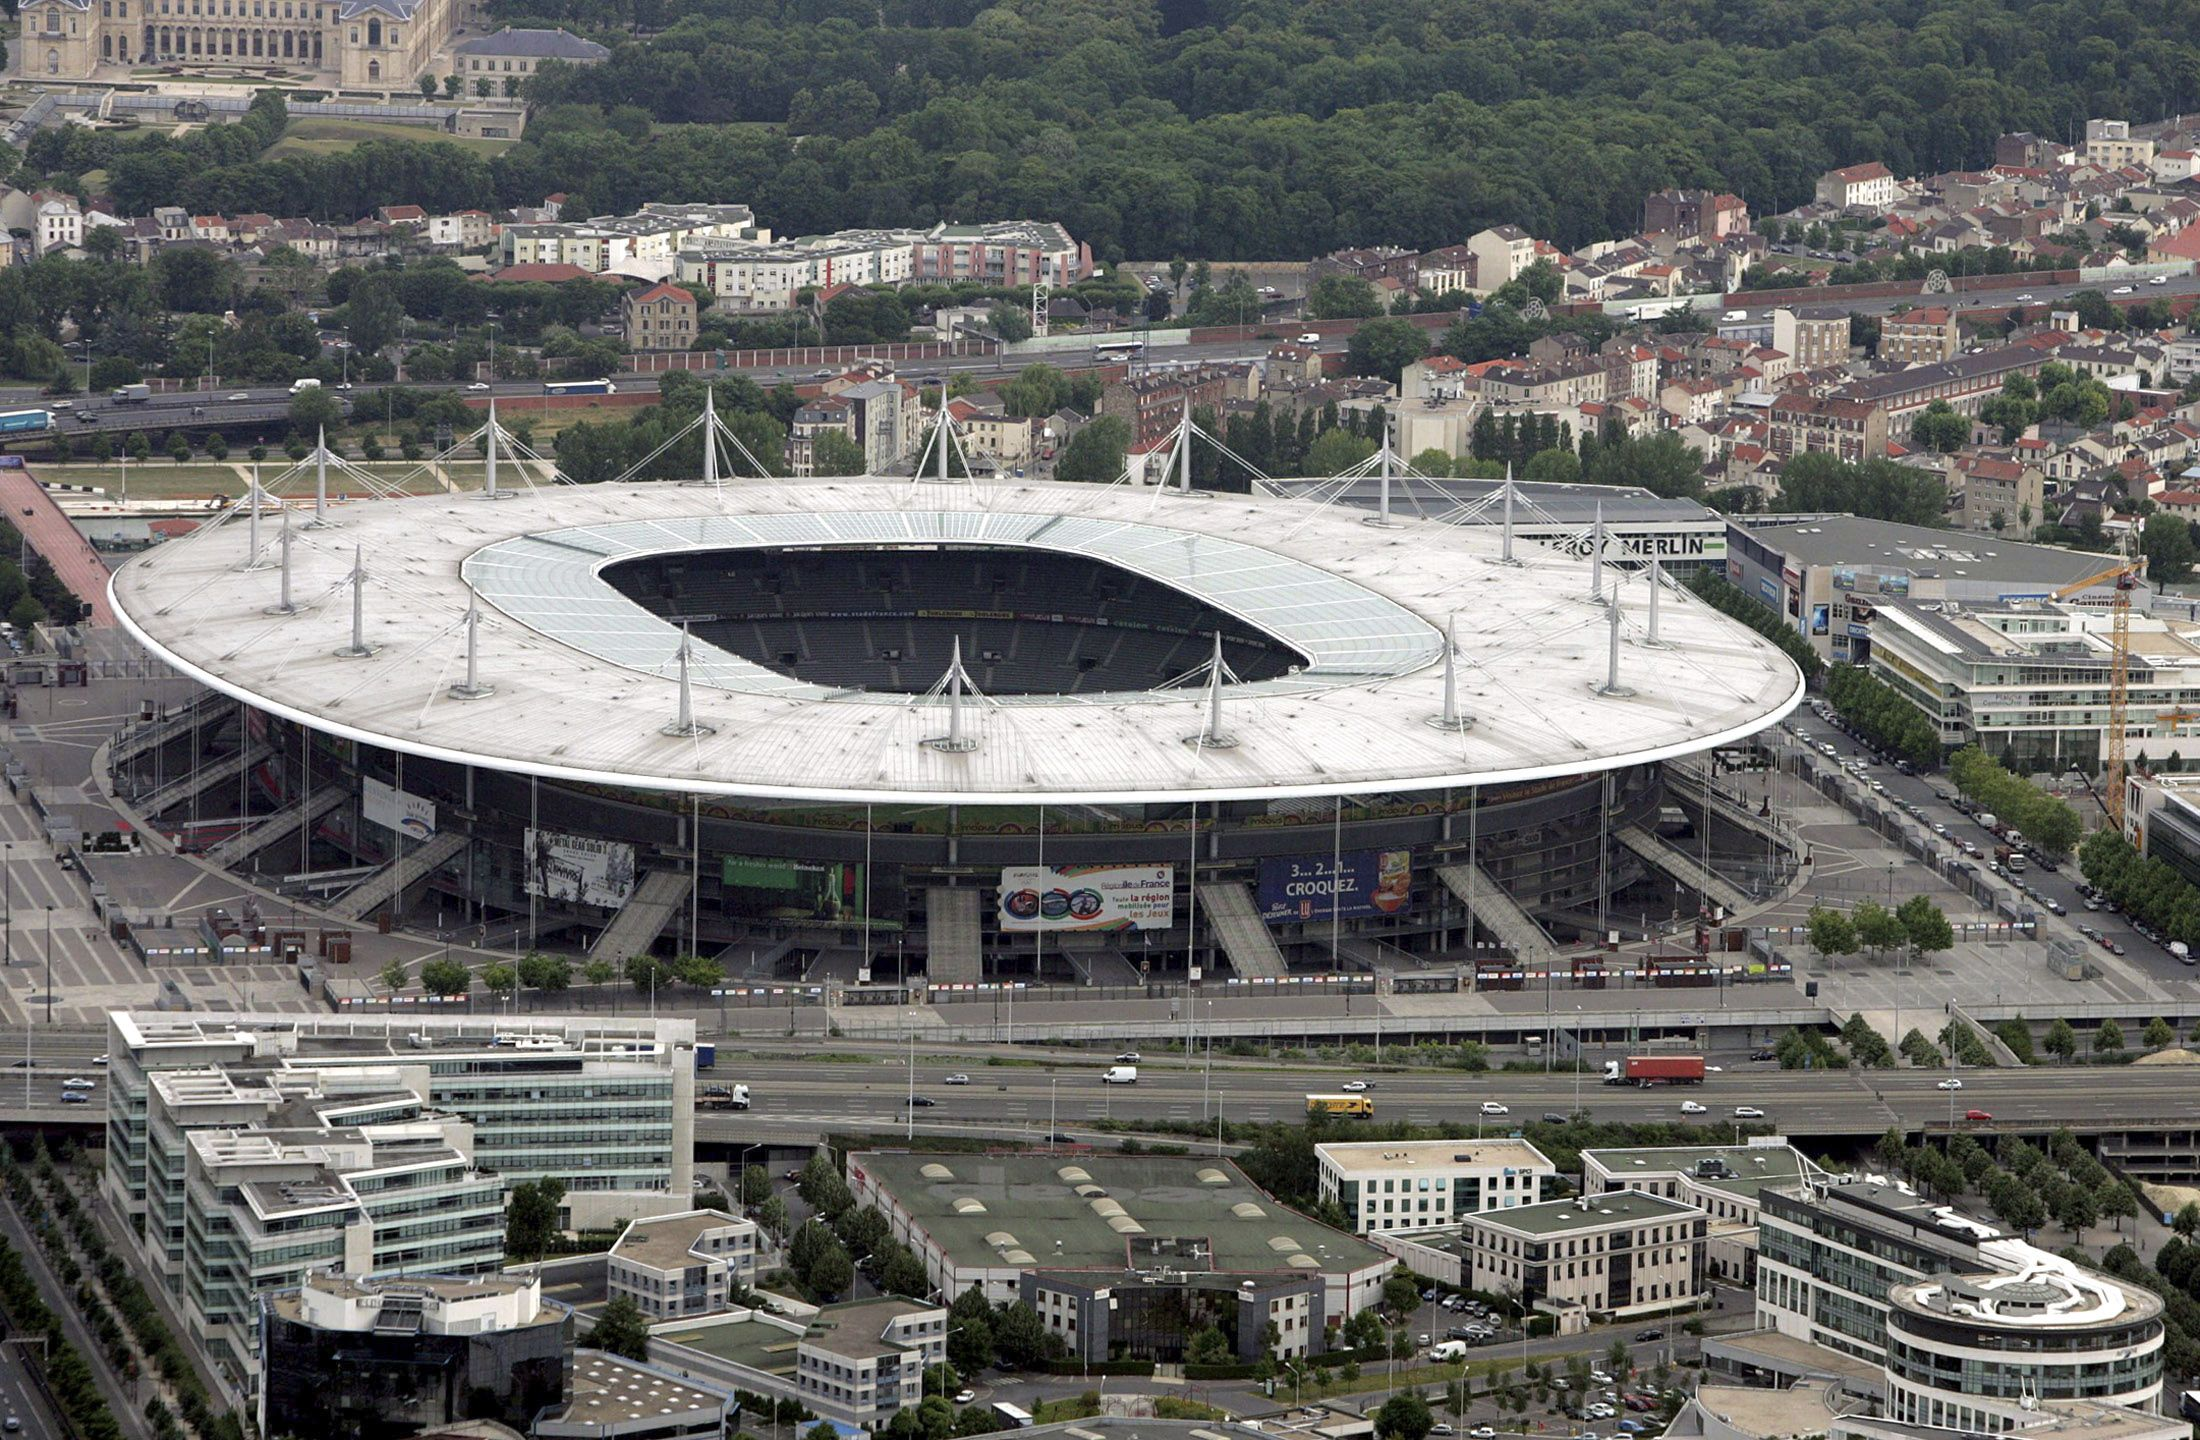 France Wants to Continue State of Emergency to Cover Euro 2016